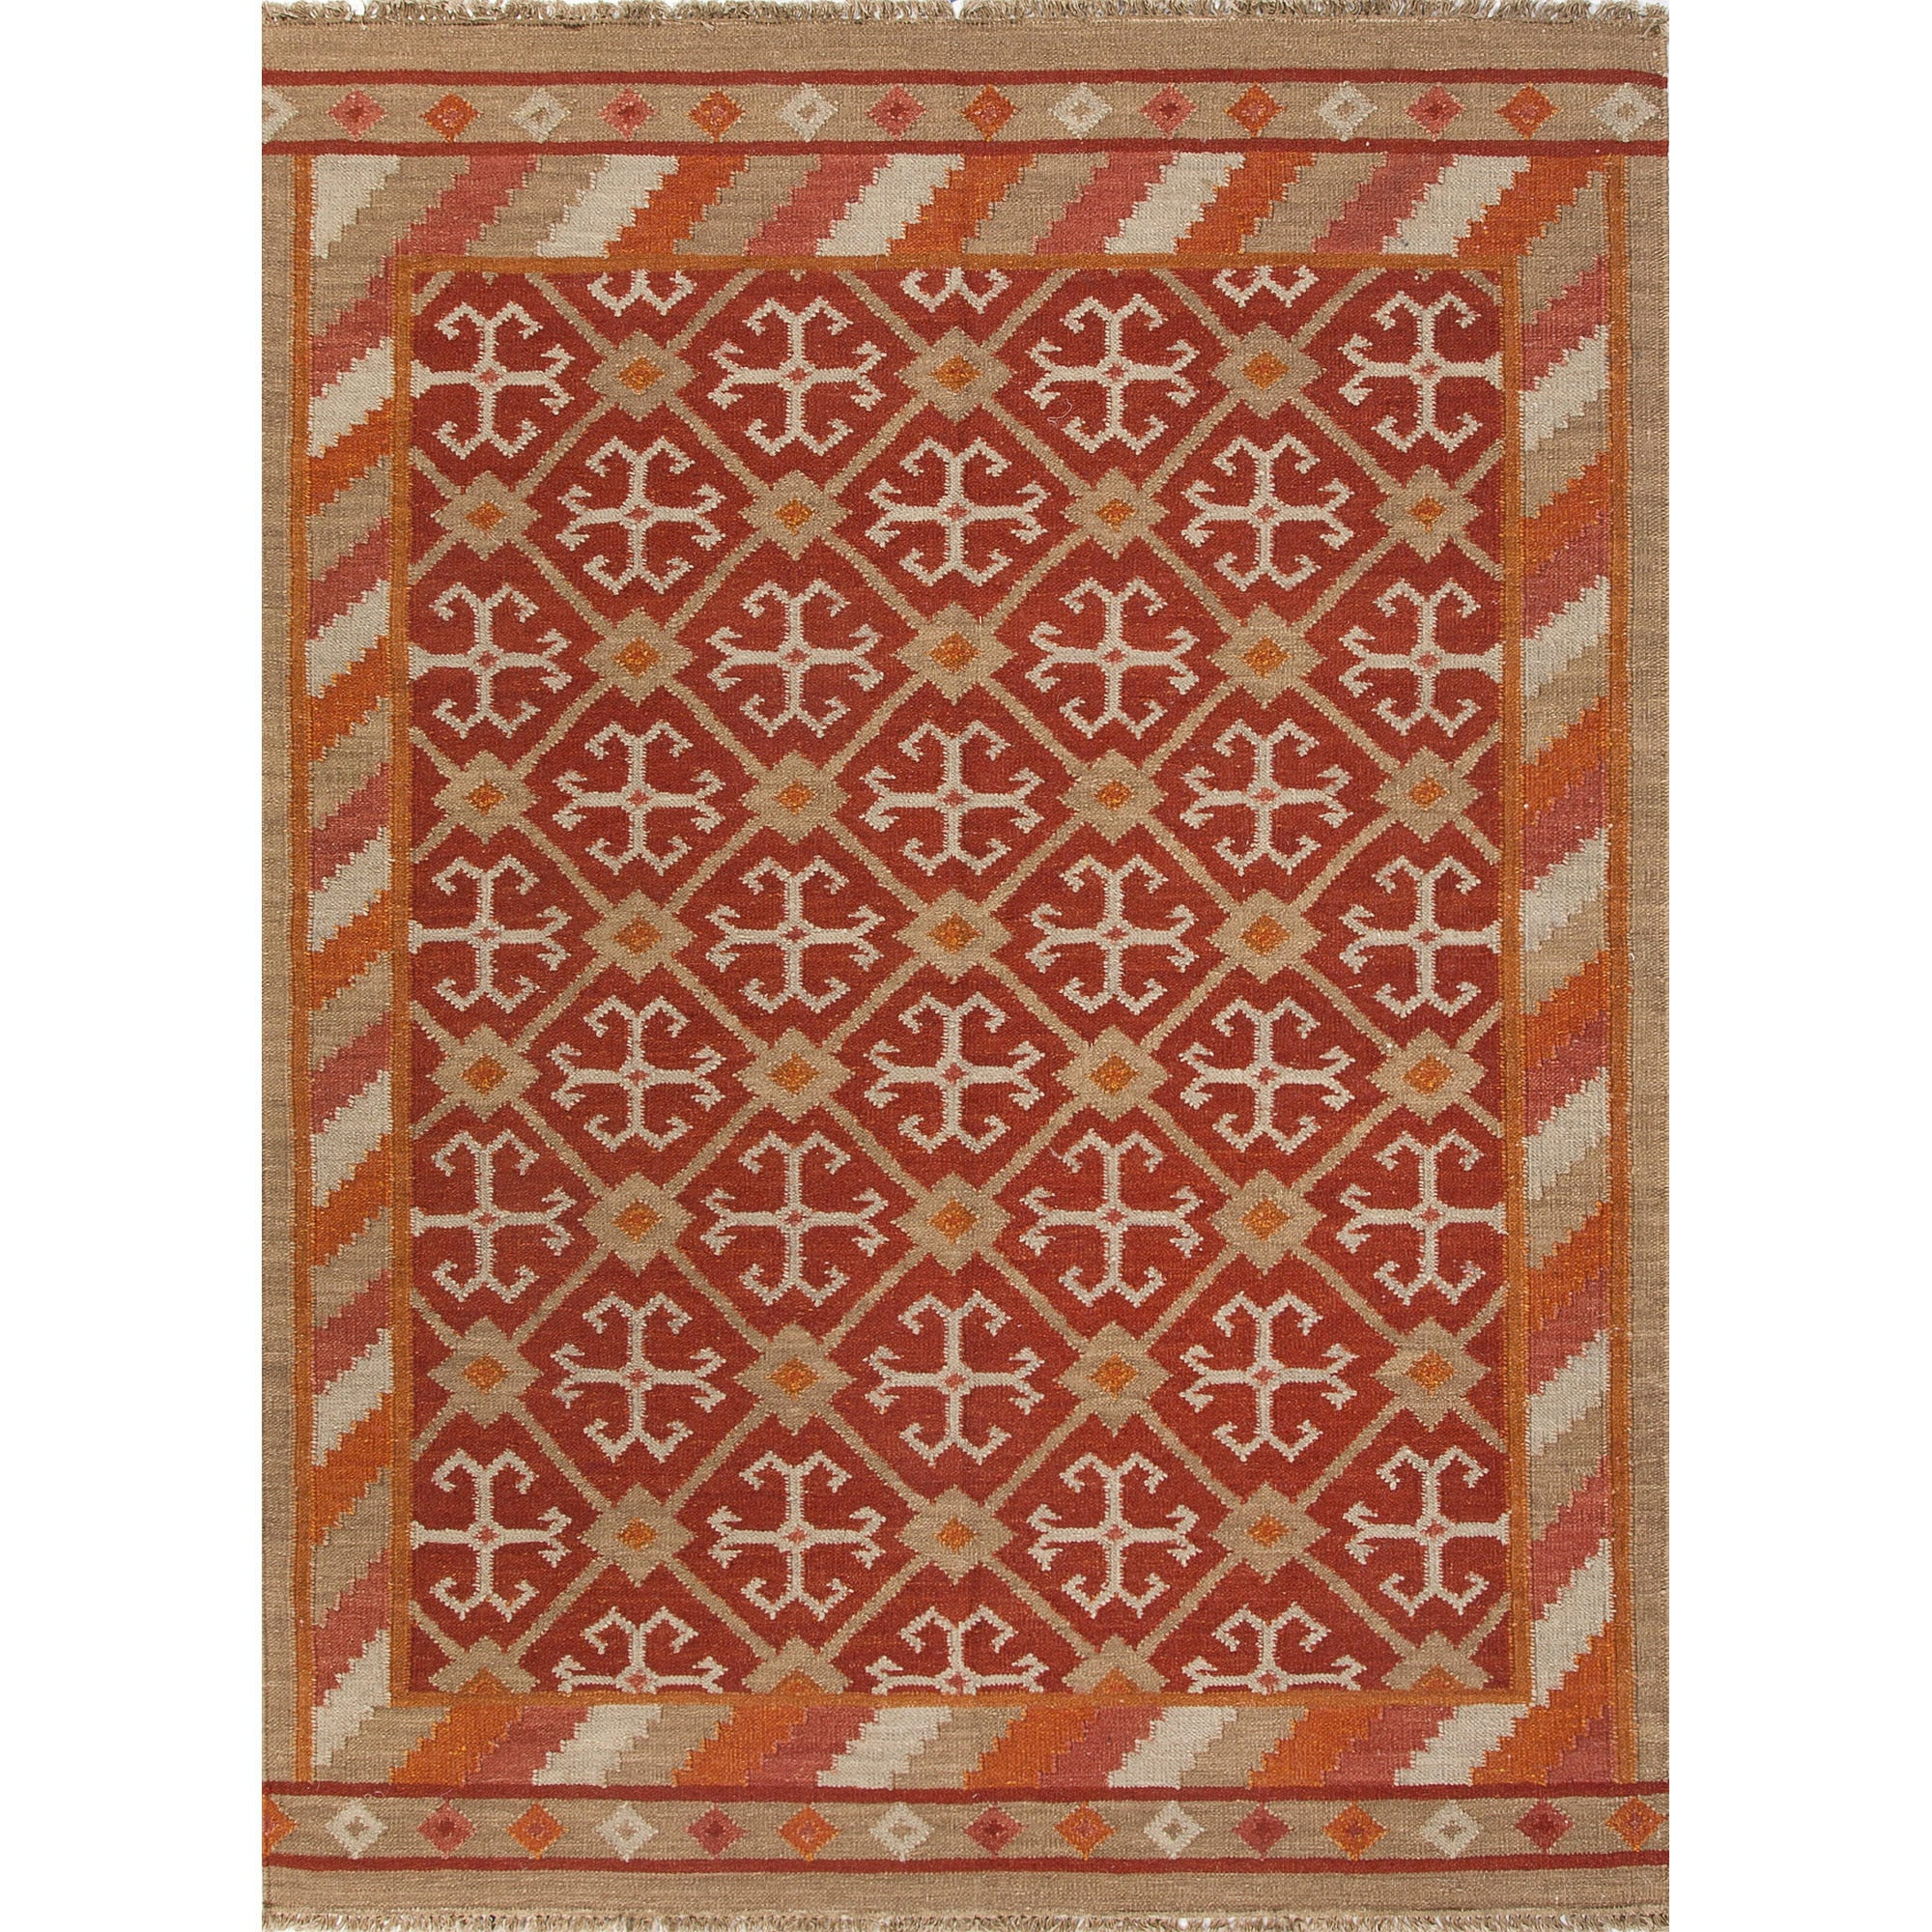 Jaipur Rugs Flat-Weave Tribal Pattern Red/Taupe Wool Area Rug